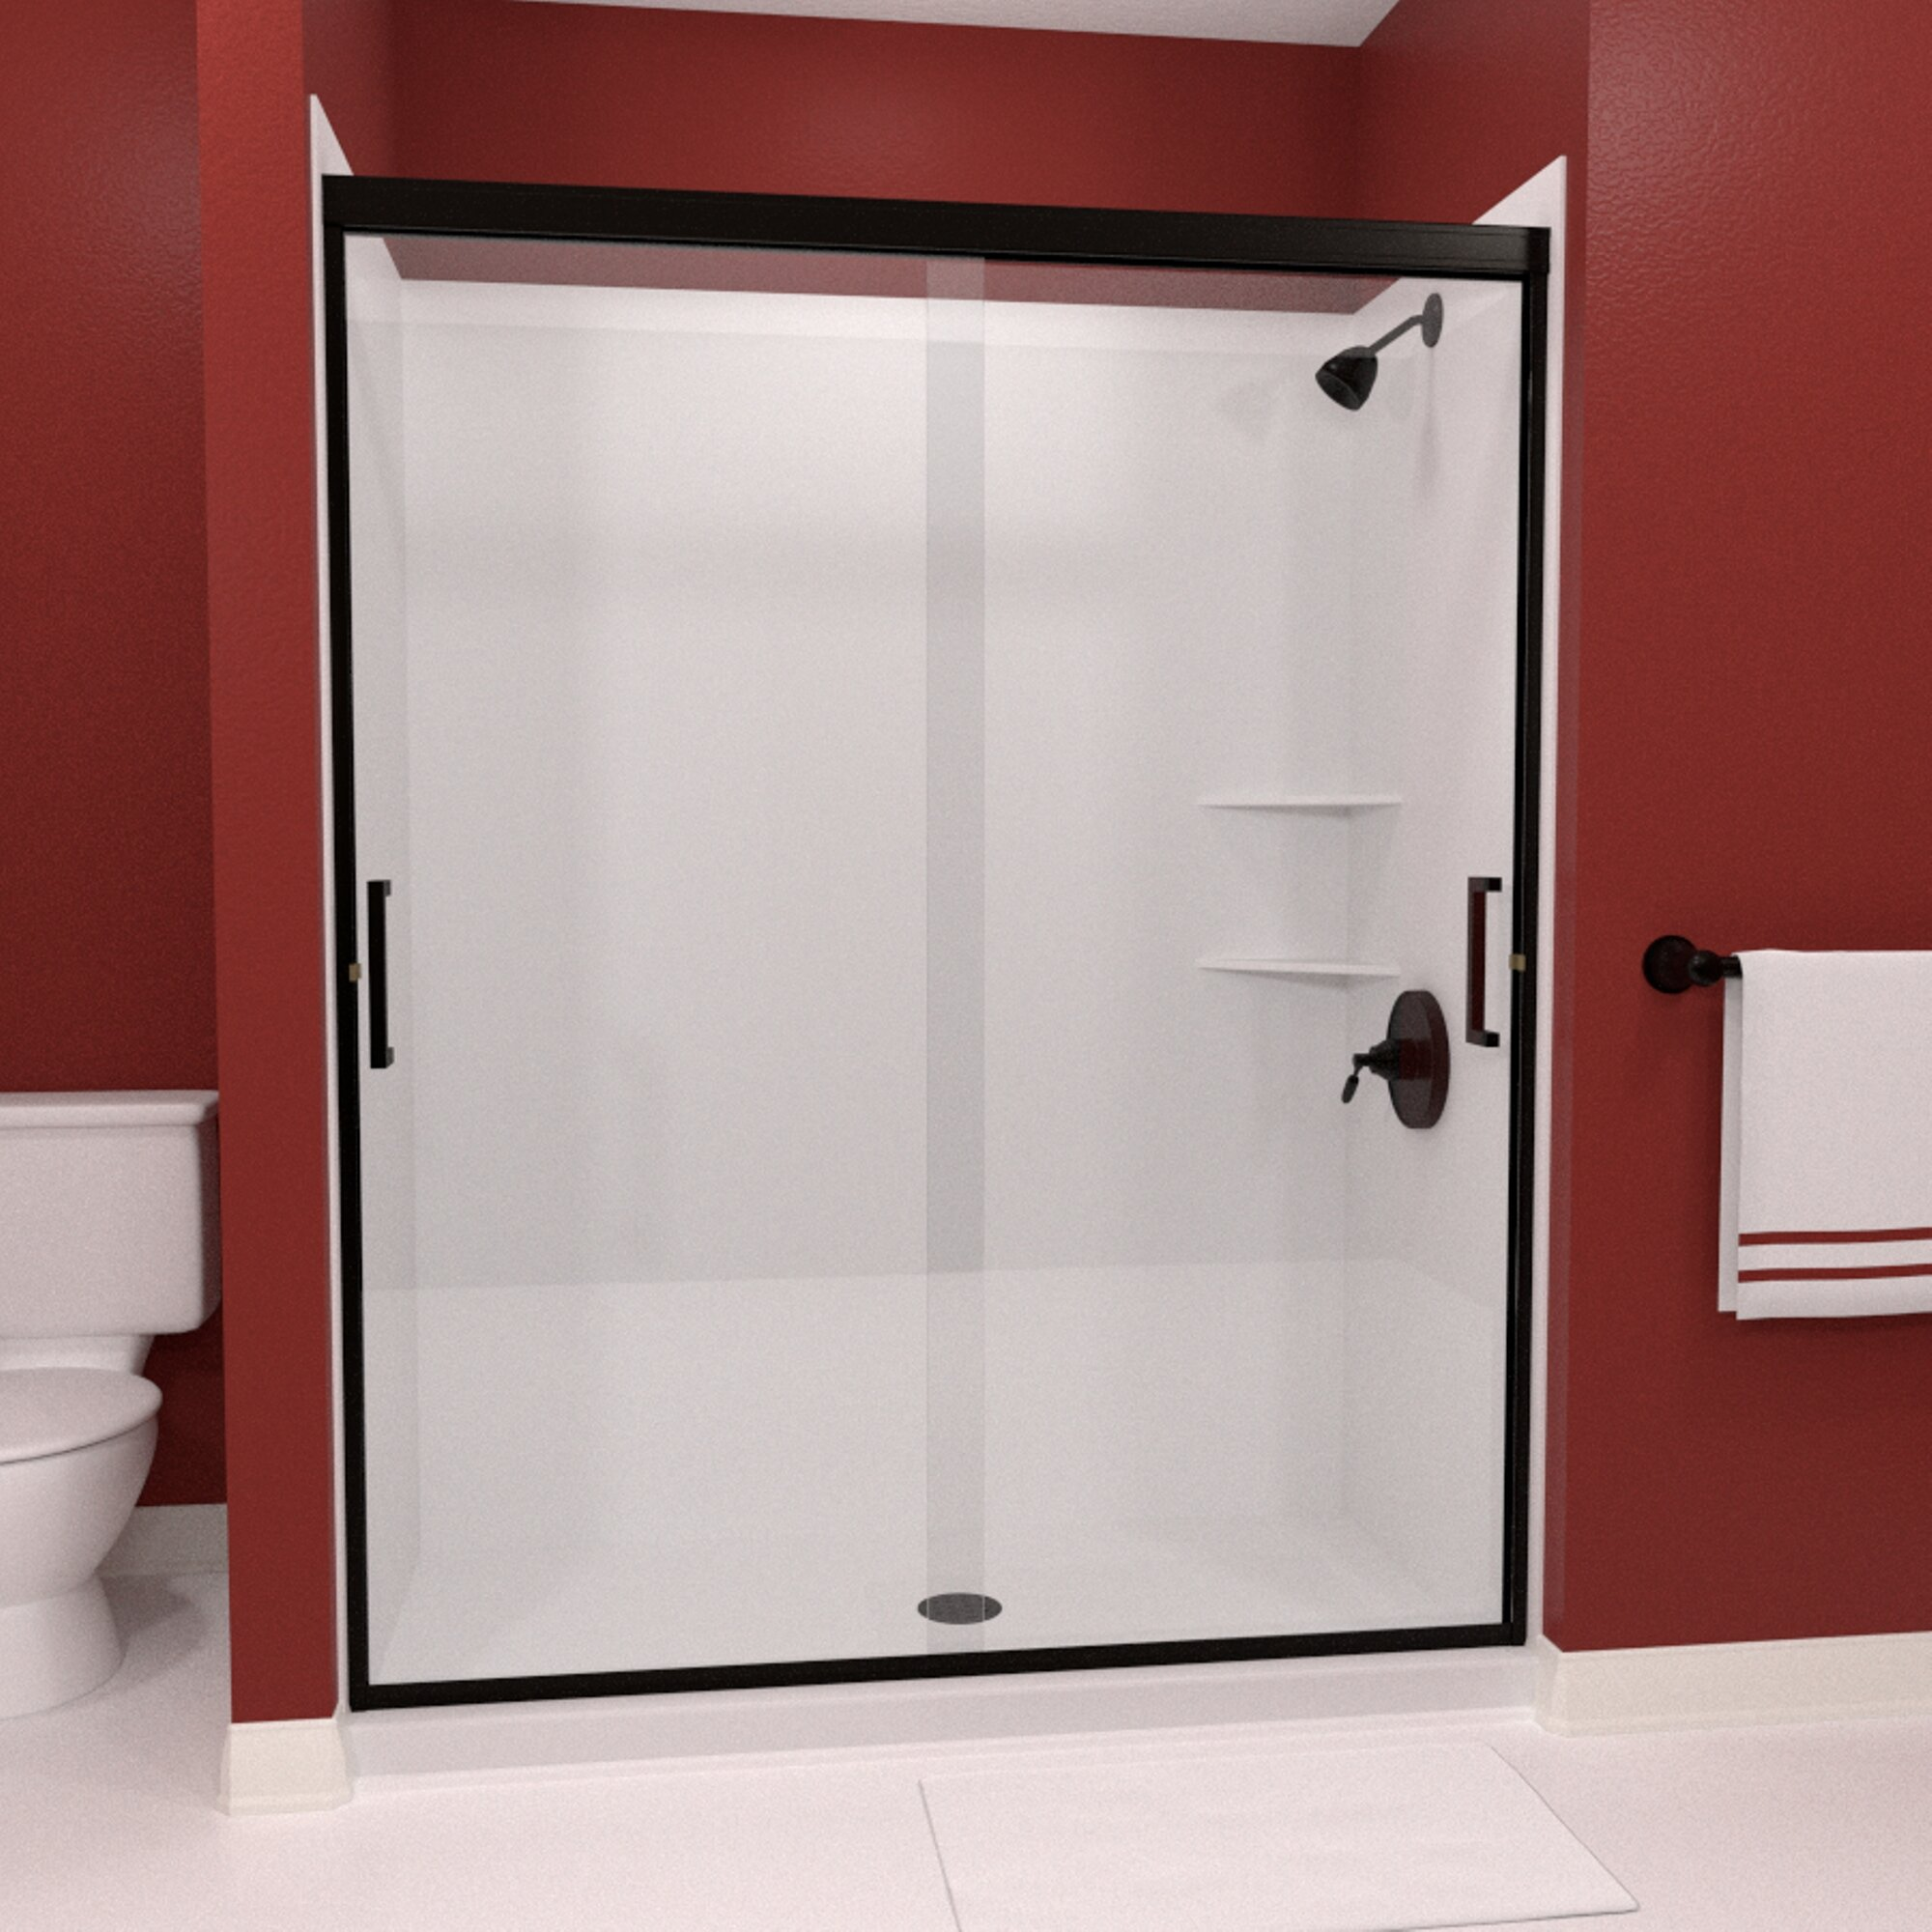 Details About Tombstone 48 X70 4 Bypass Semi Frameless Shower Door Anodized Oil Rubbed Bronze